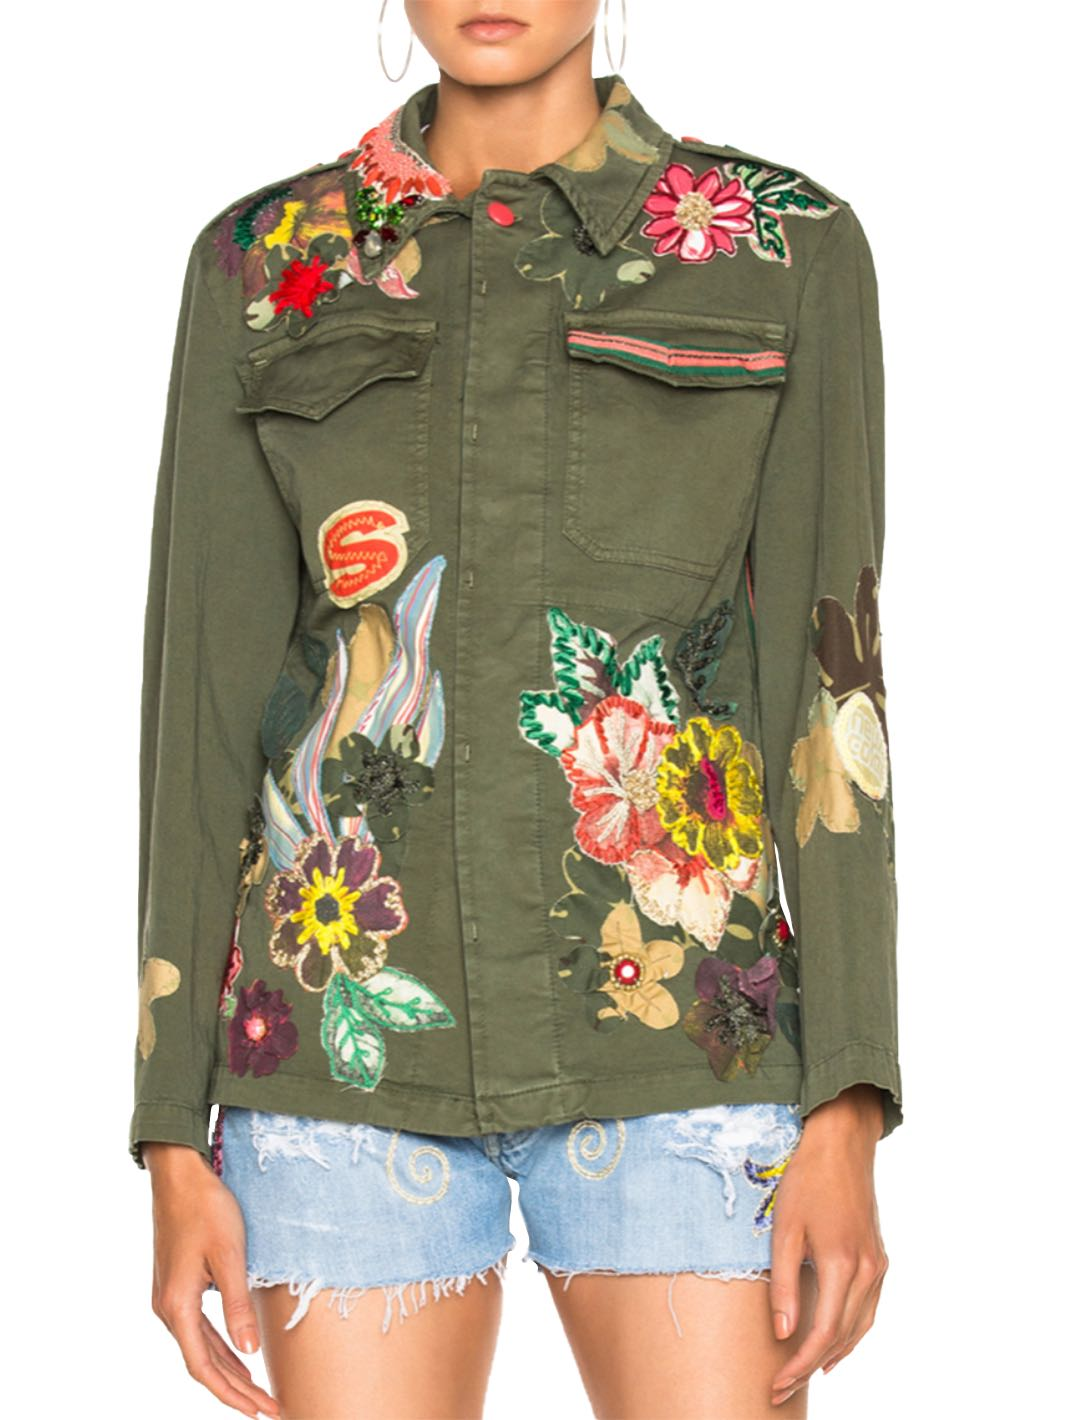 Floral Embroidery Shirt-Jacket - The Bobby Boga